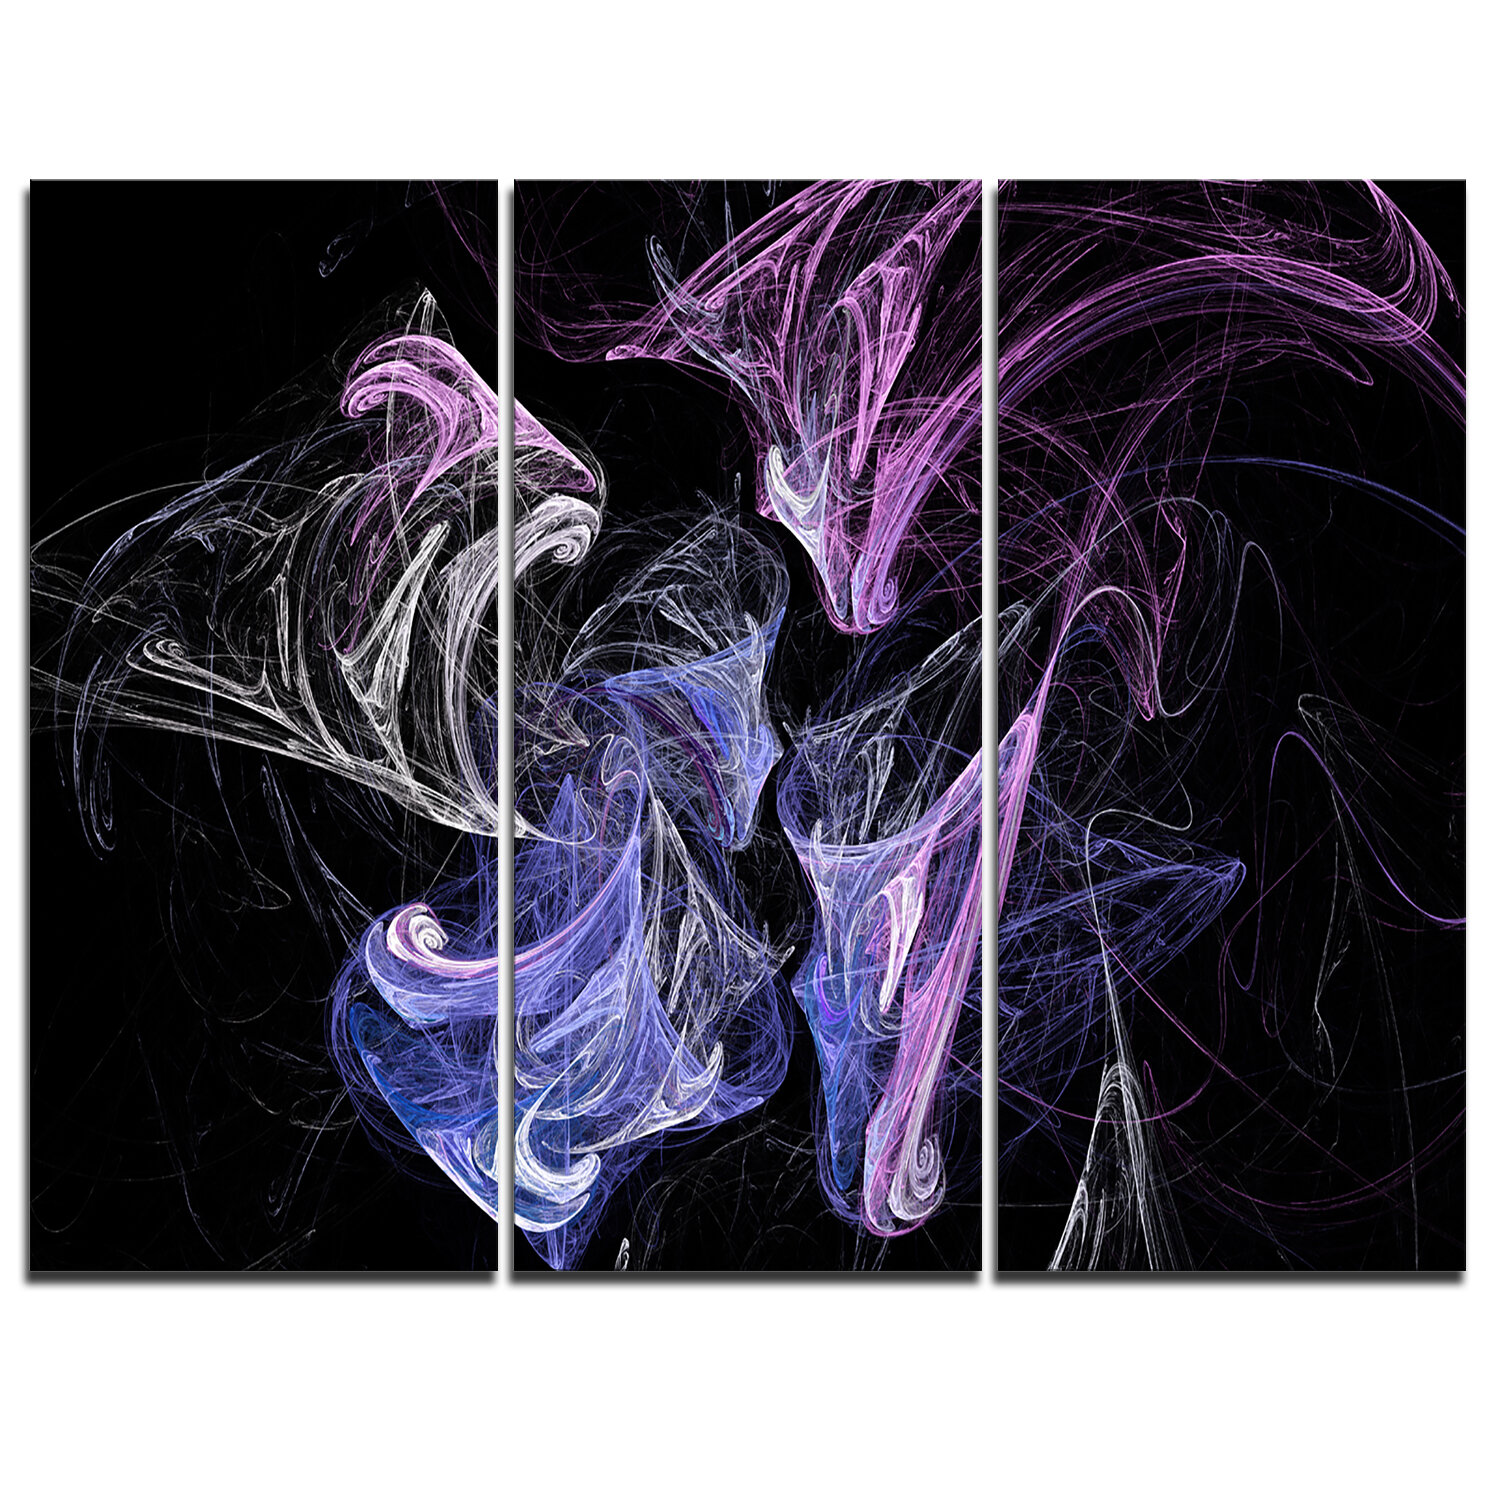 Designart Billowing Smoke Blue Purple 3 Piece Graphic Art On Wrapped Canvas Set Wayfair